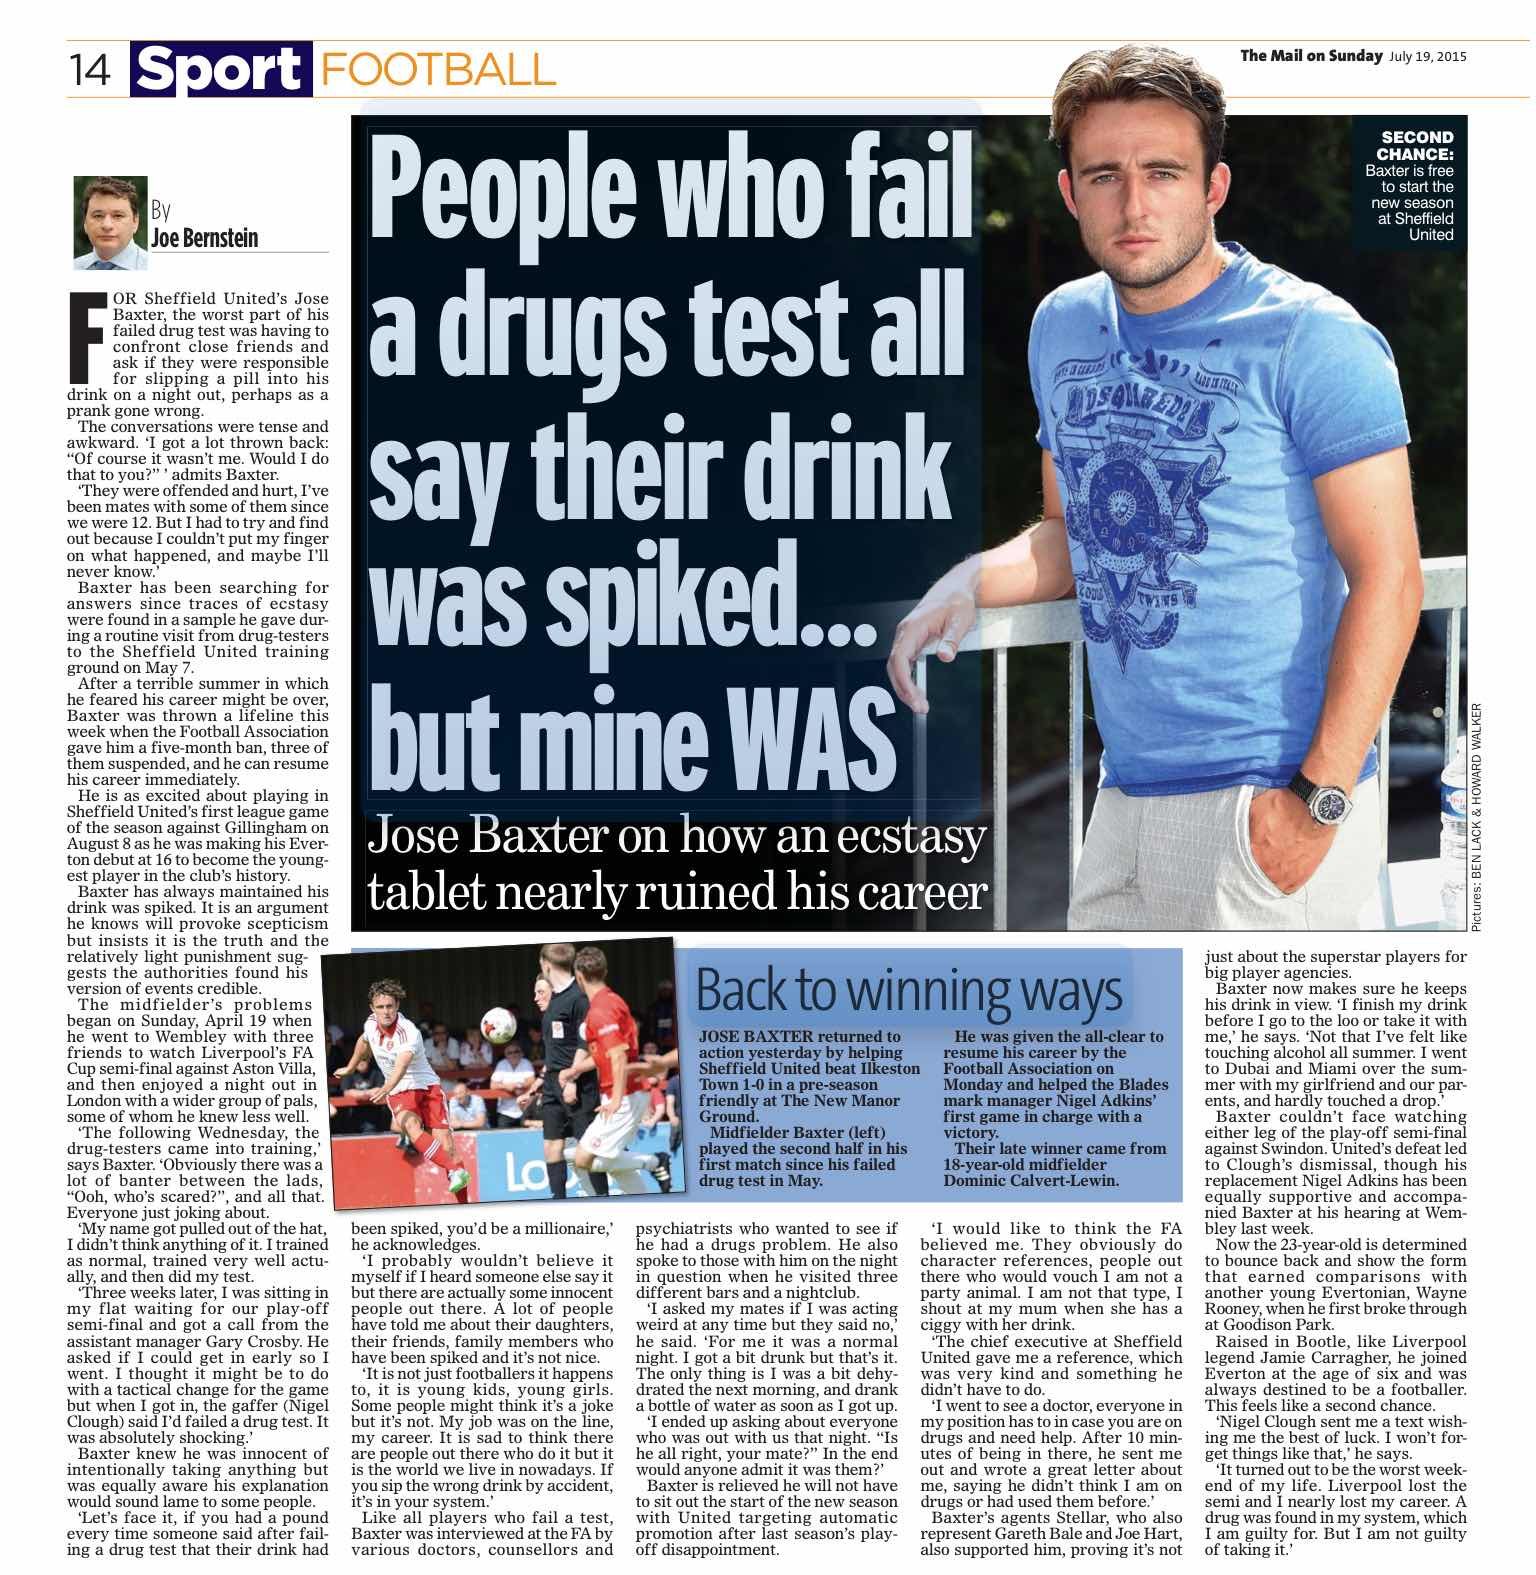 AGONY AND THE ECSTACY:  JOSE BAXTER'S INTERVIEW WITH THE MAIL ON SUNDAY